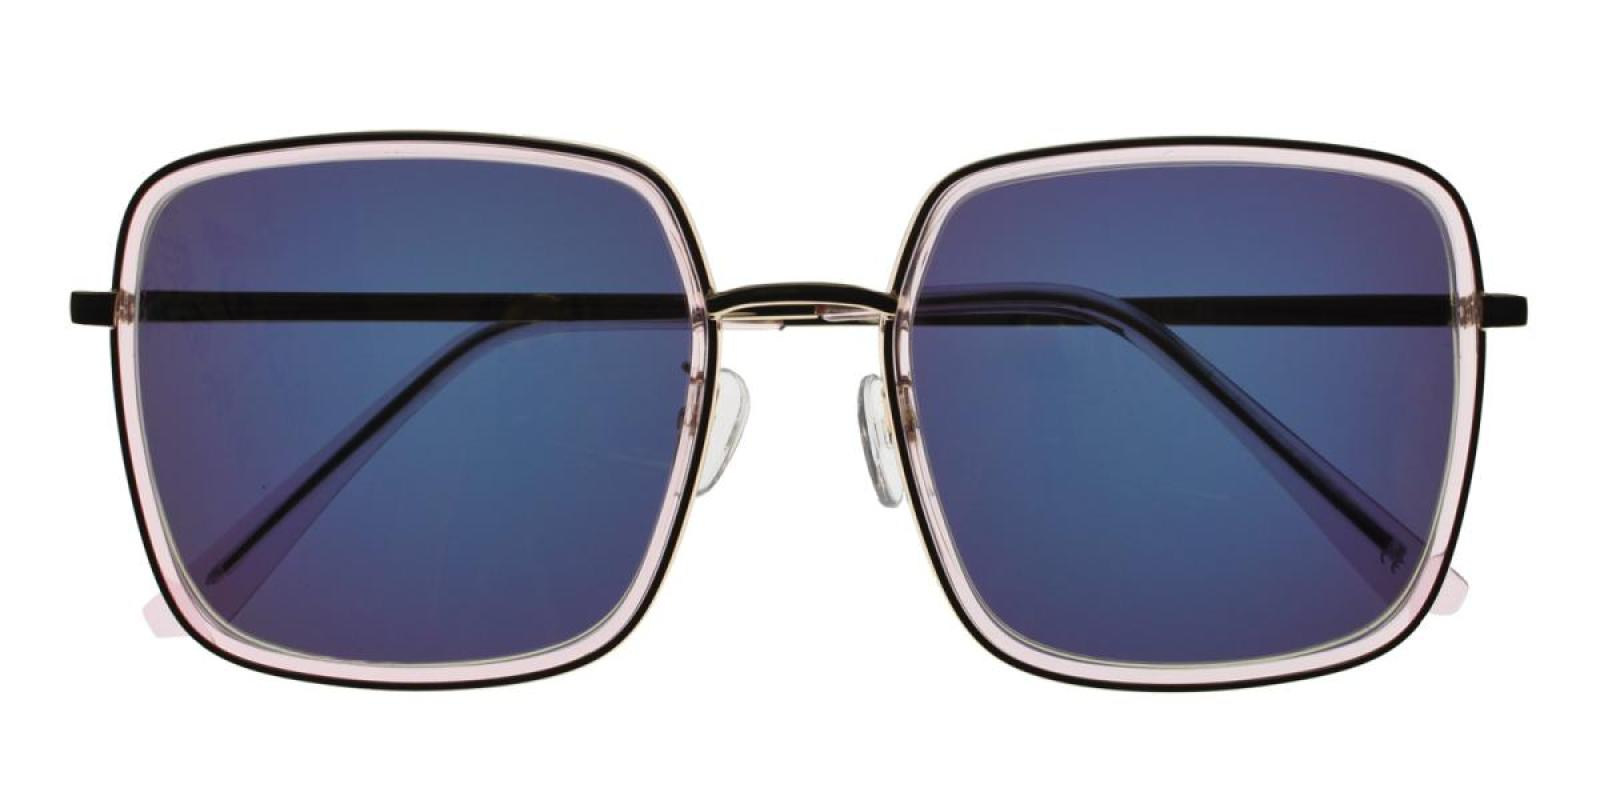 Rongstar-Translucent-Geometric-Combination / Metal / TR-Sunglasses-detail